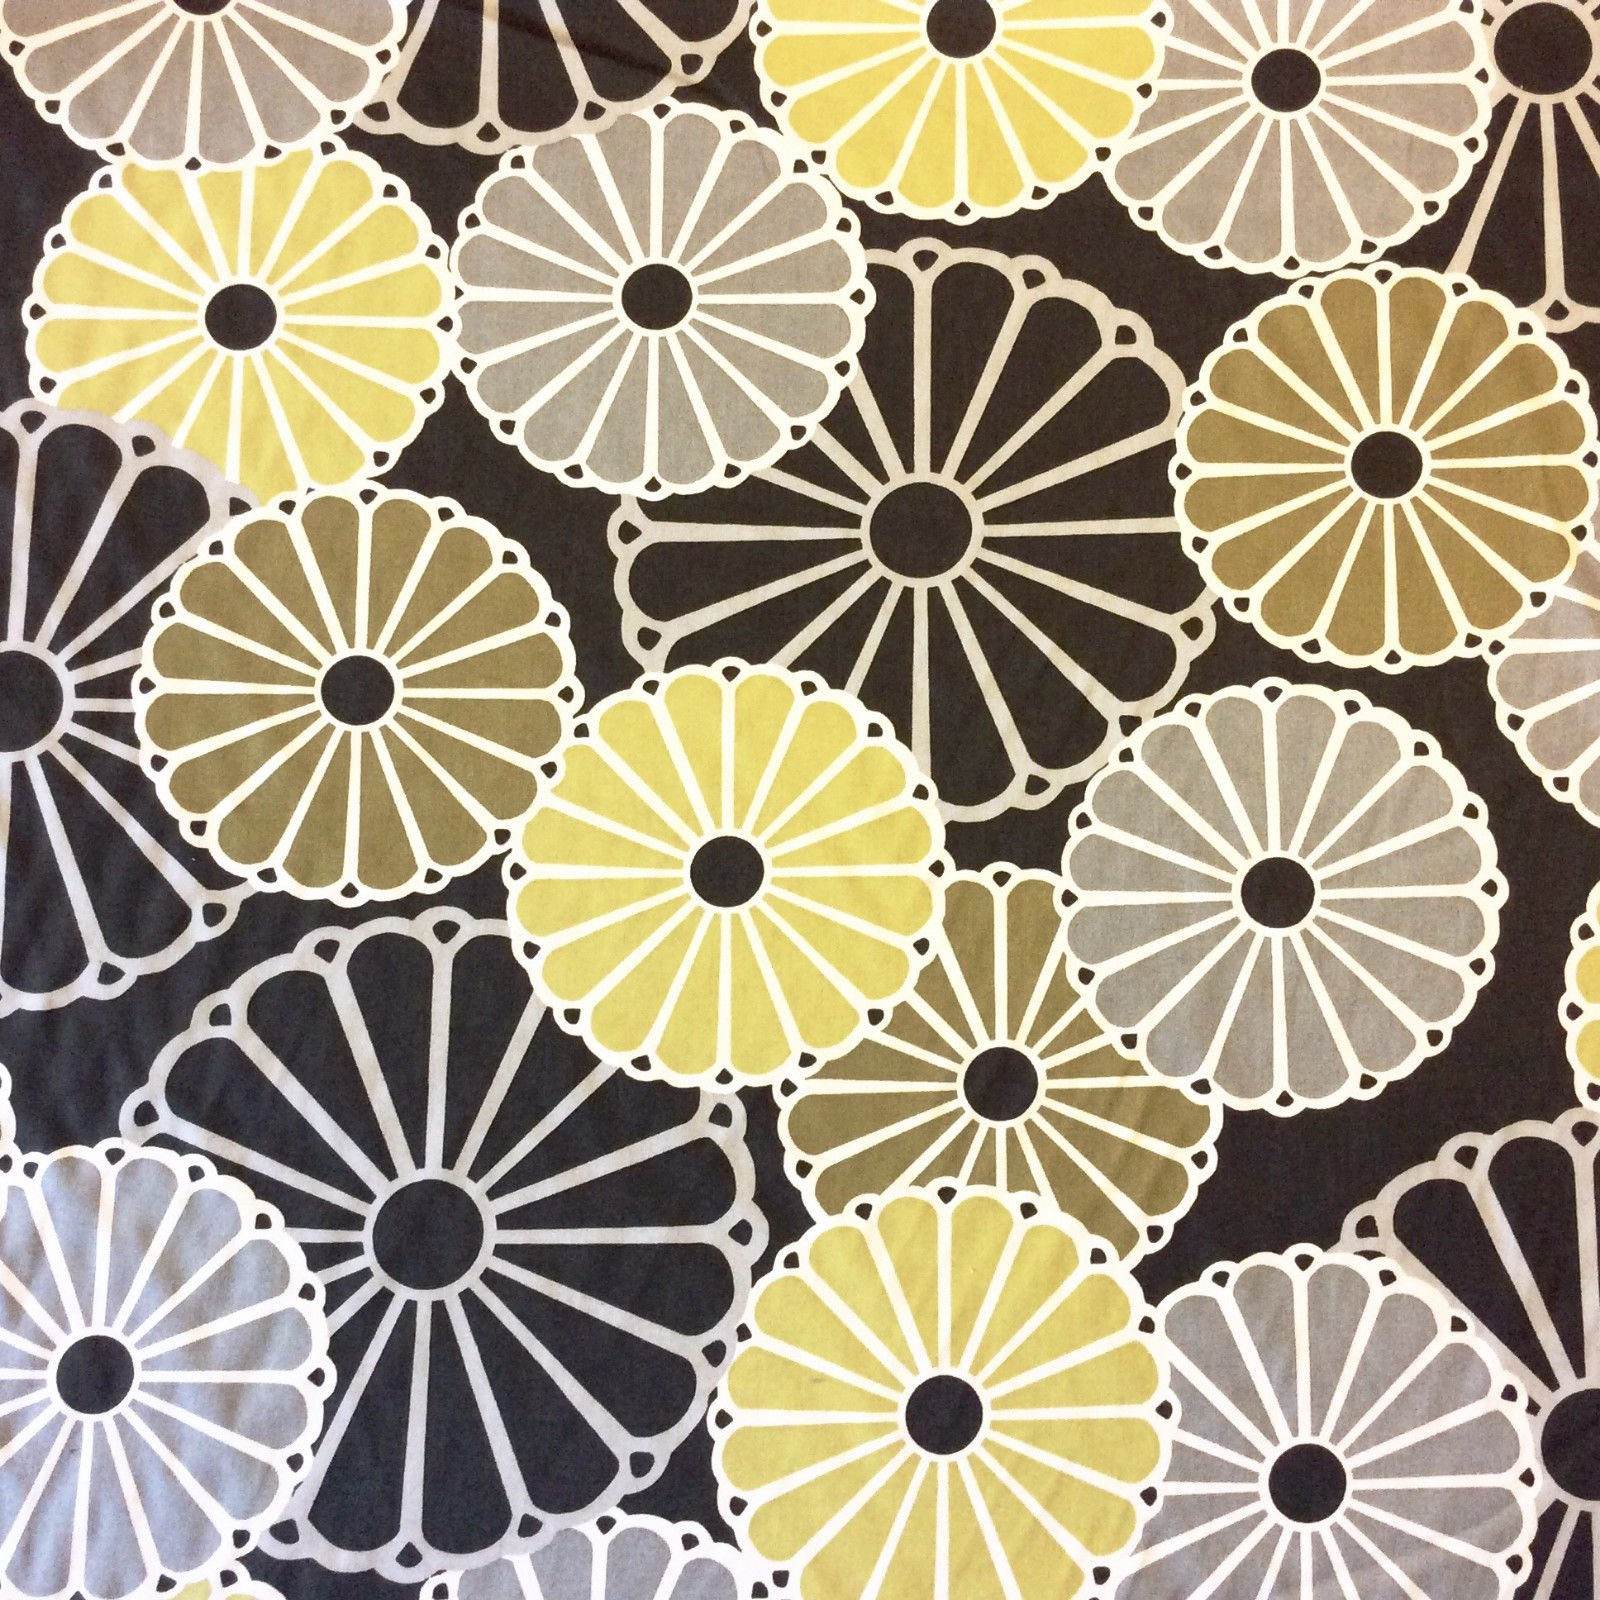 Thomas Paul Duralee,  Parasois Chartreuse Number: 20873-25Scandinavian Modern Flowers Light Black background Heavy Weight Cotton Fabric Home Dec Fabric DSO306